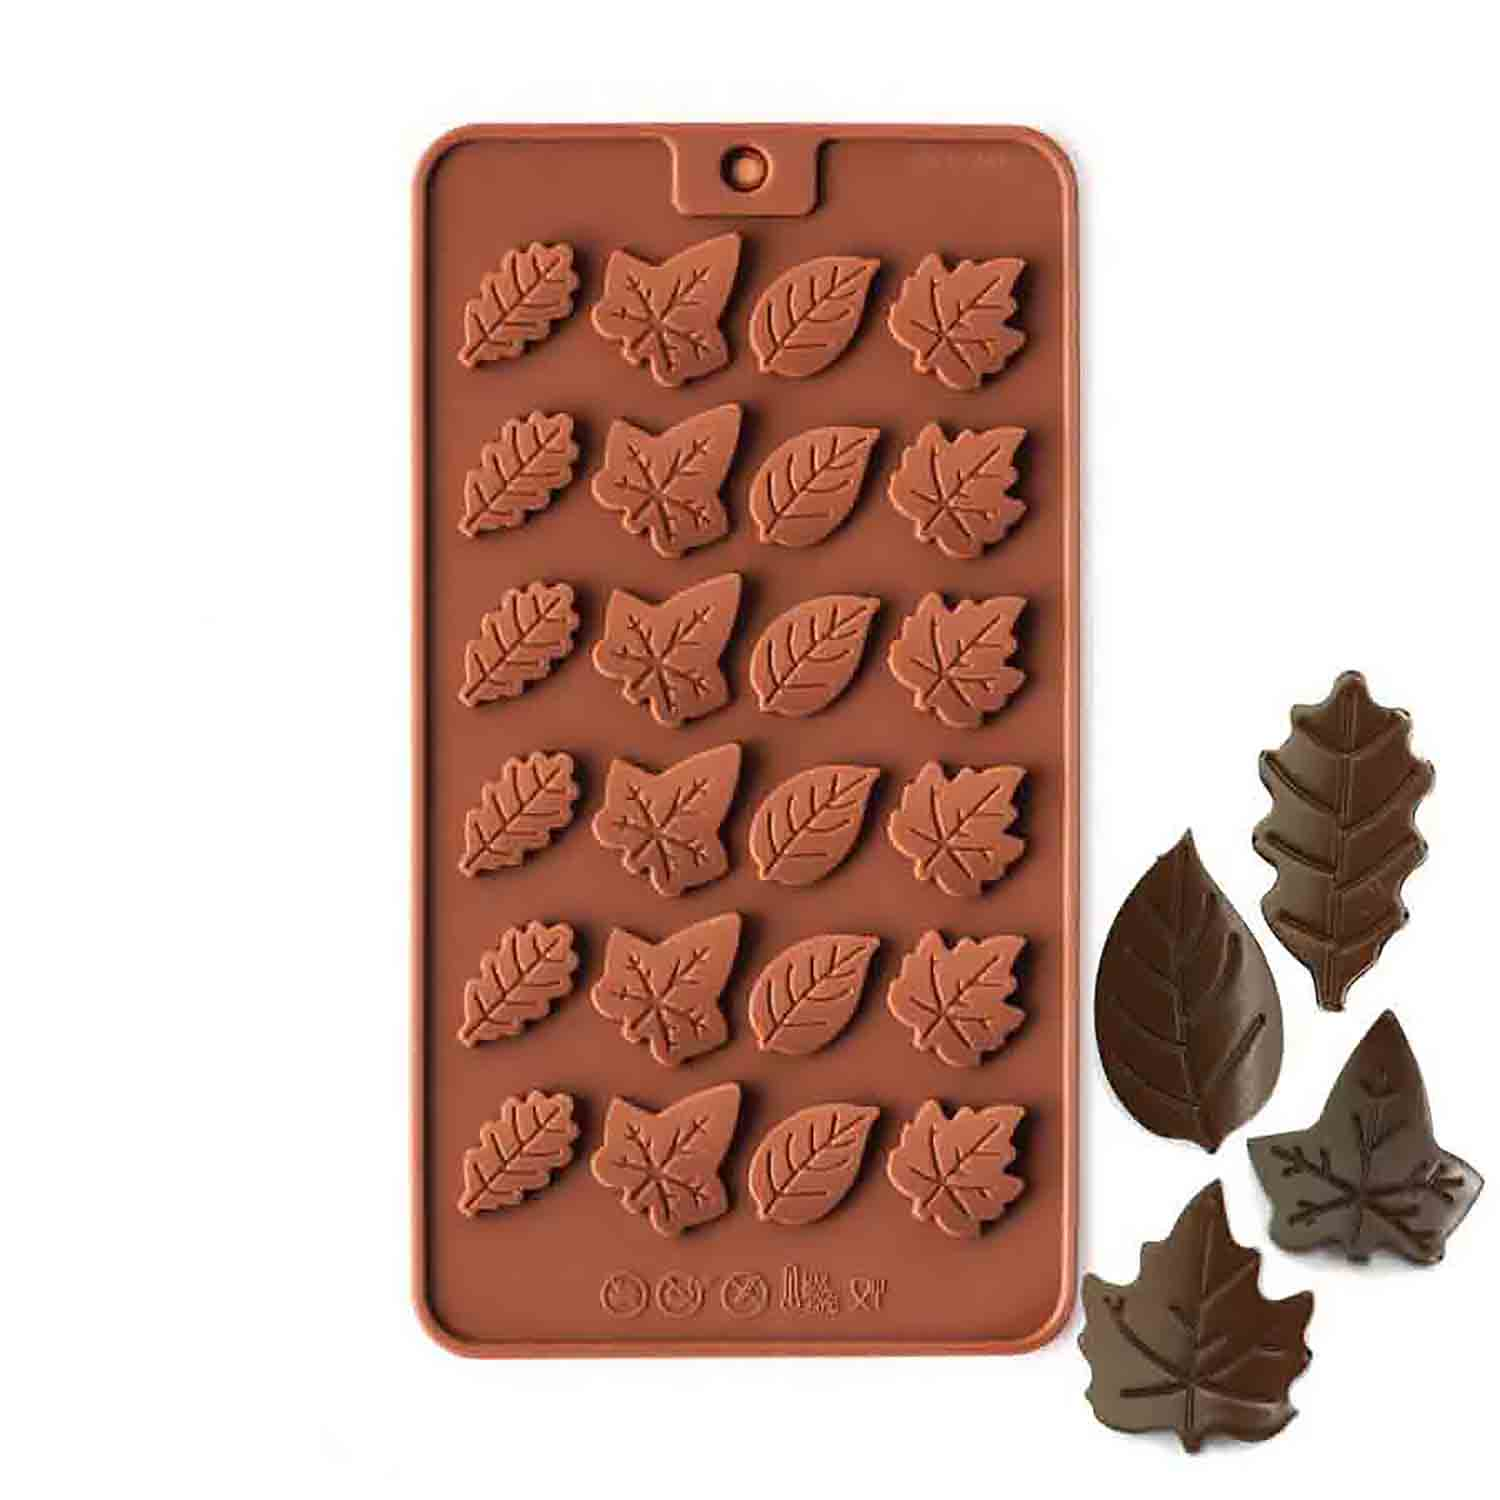 Leaf Medallions Silicone Chocolate Candy Mold